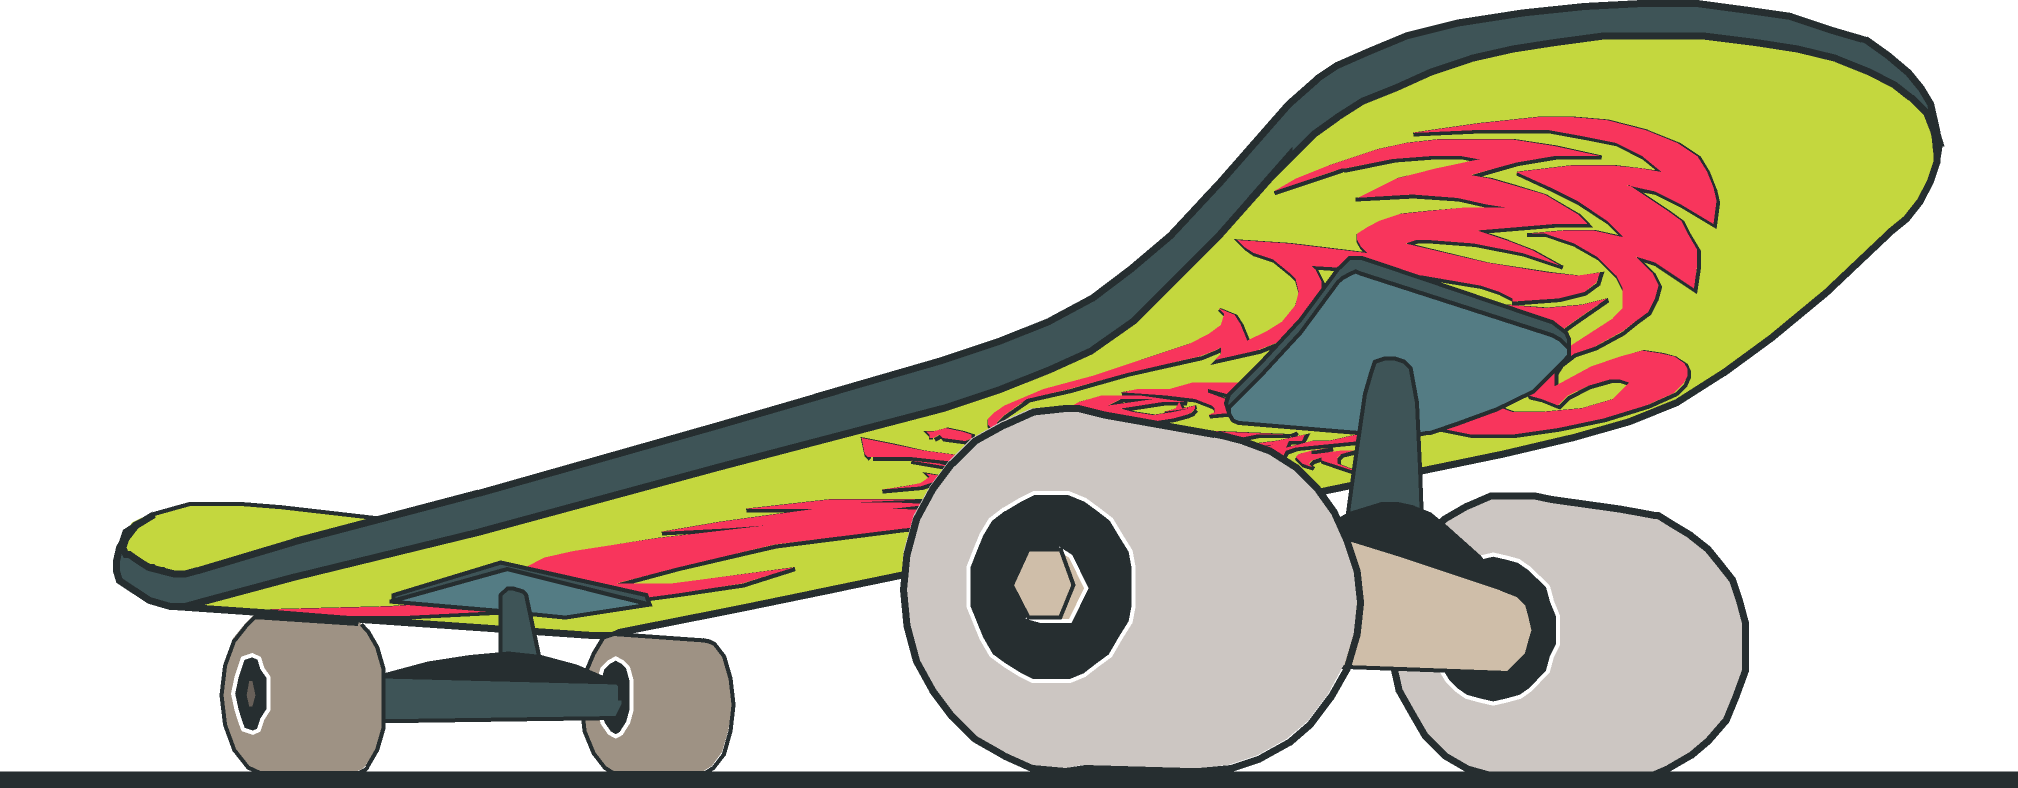 Vector skate cool design. Skateboard close up with